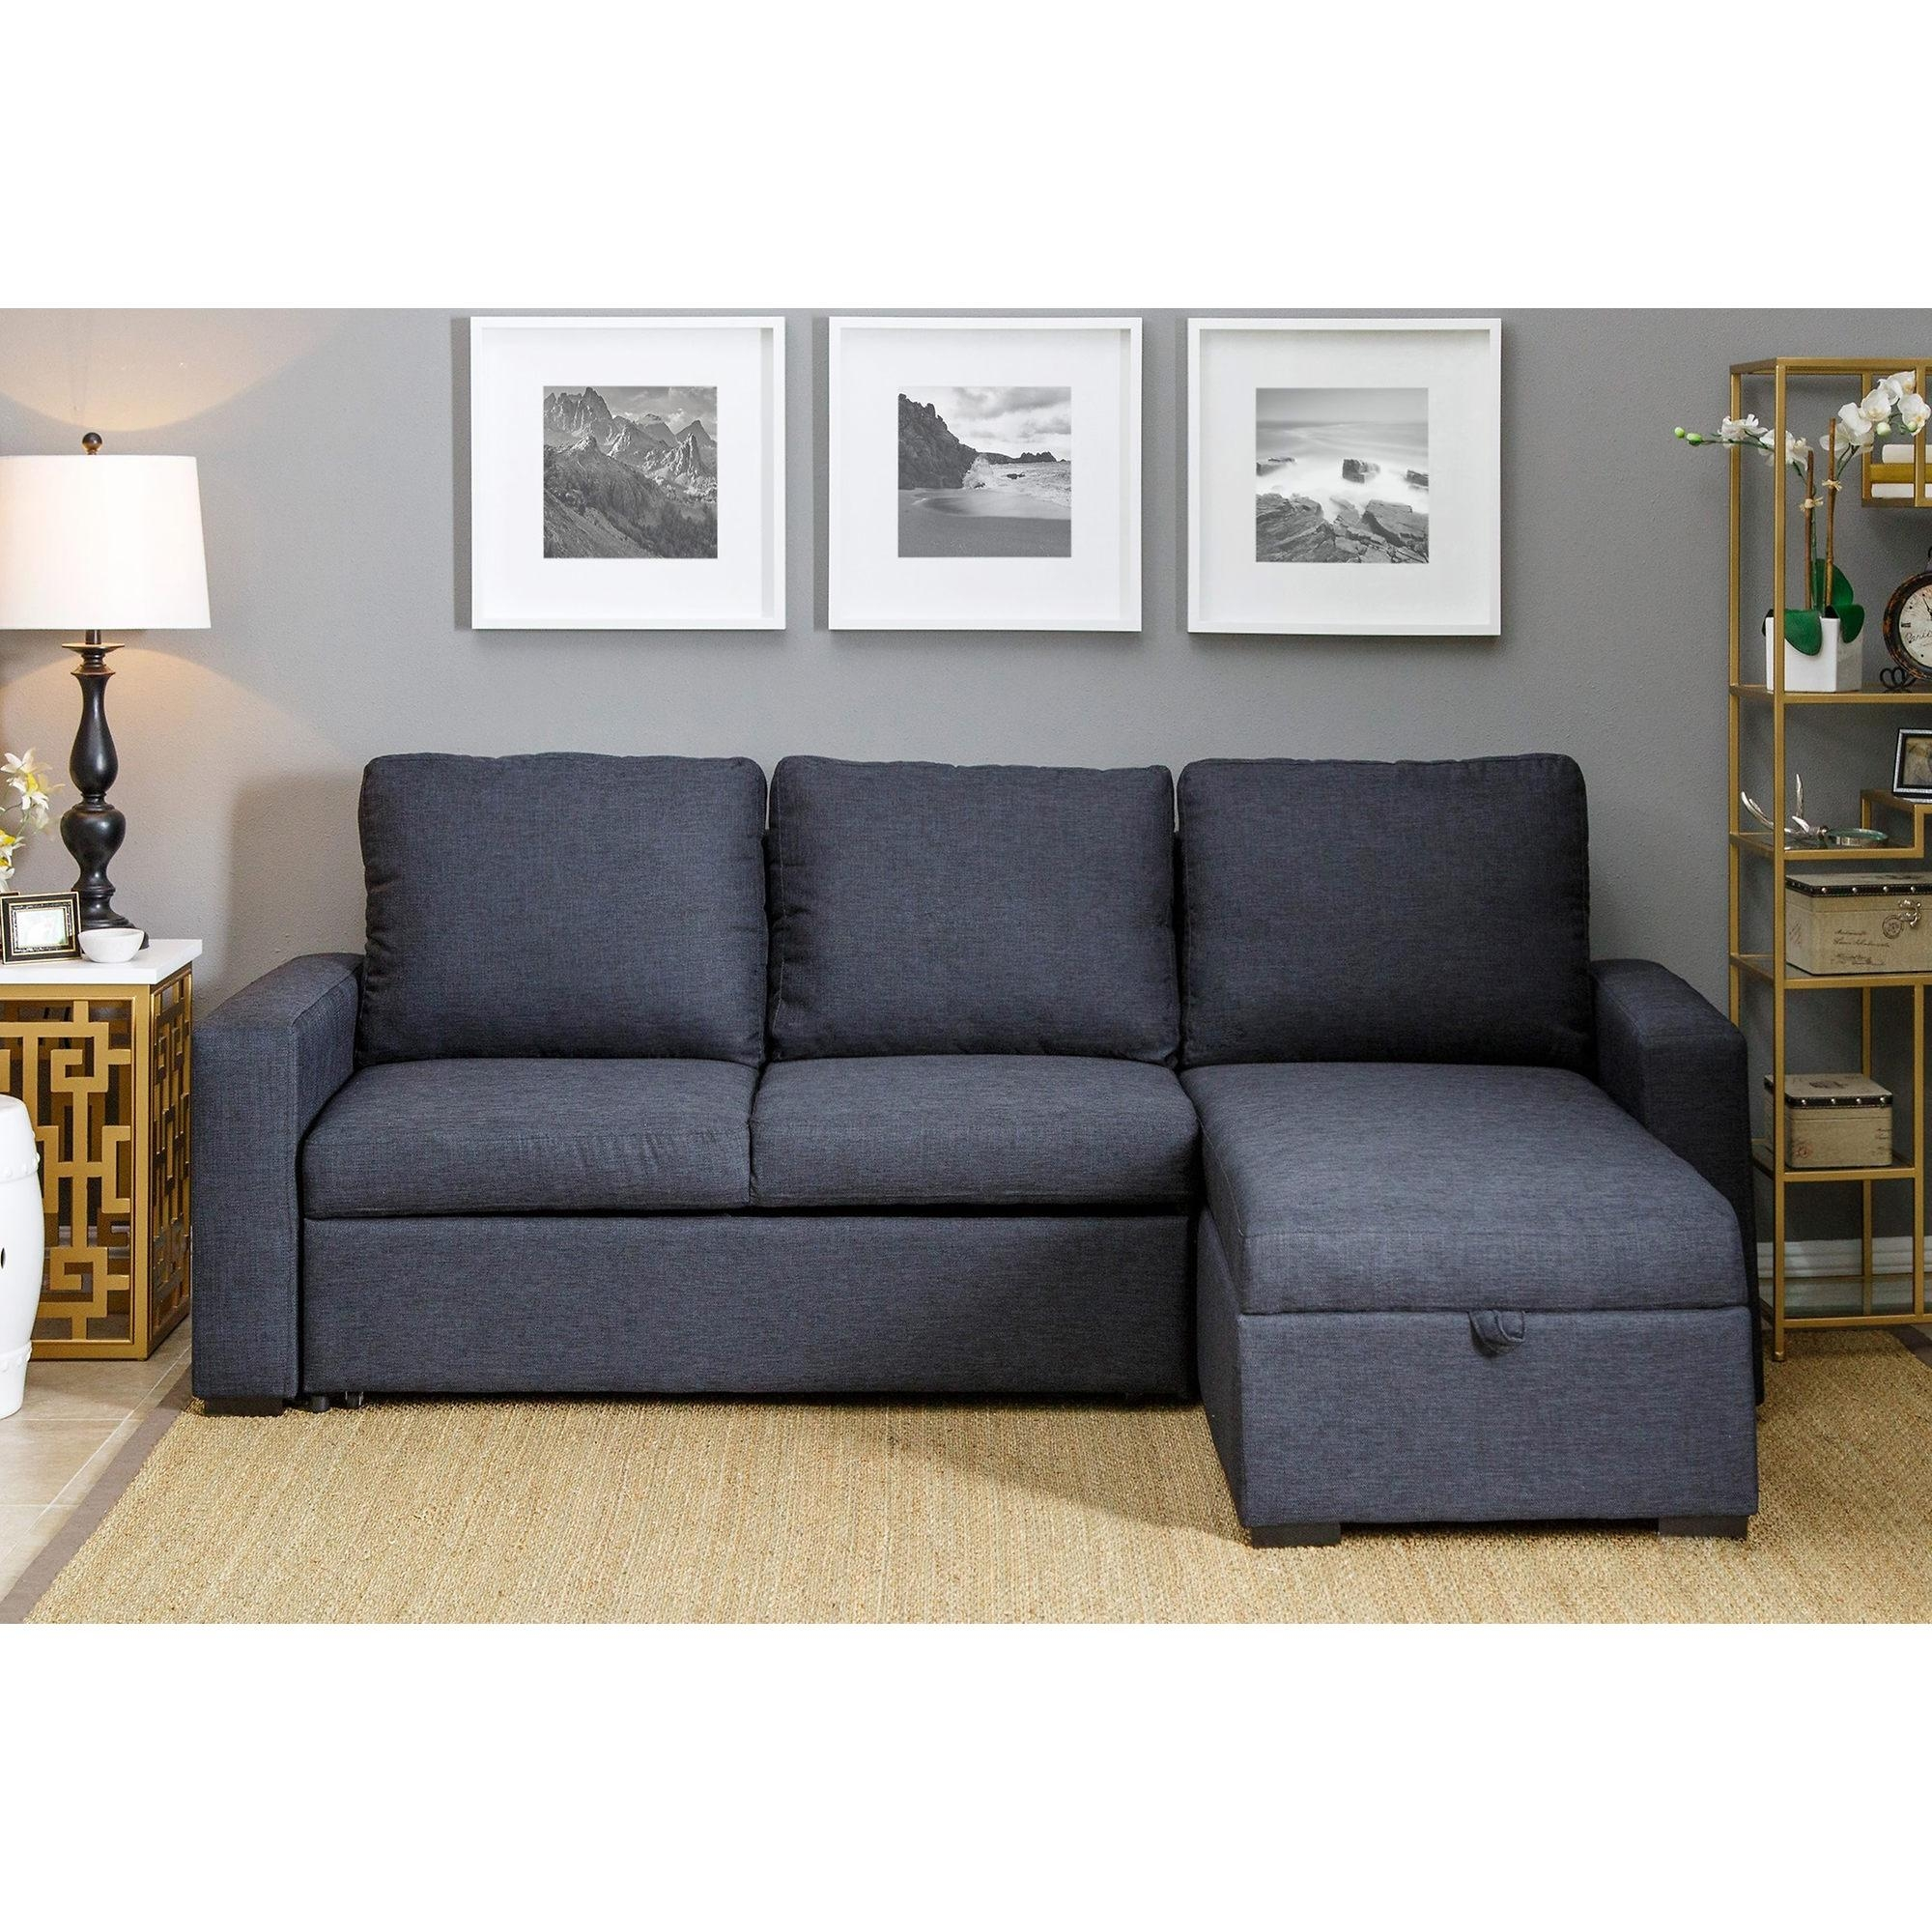 Sofas Center : Beautiful Abbyson Living Charlotte Beigeal Sofa And Pertaining To Abbyson Living Sectional (View 7 of 15)